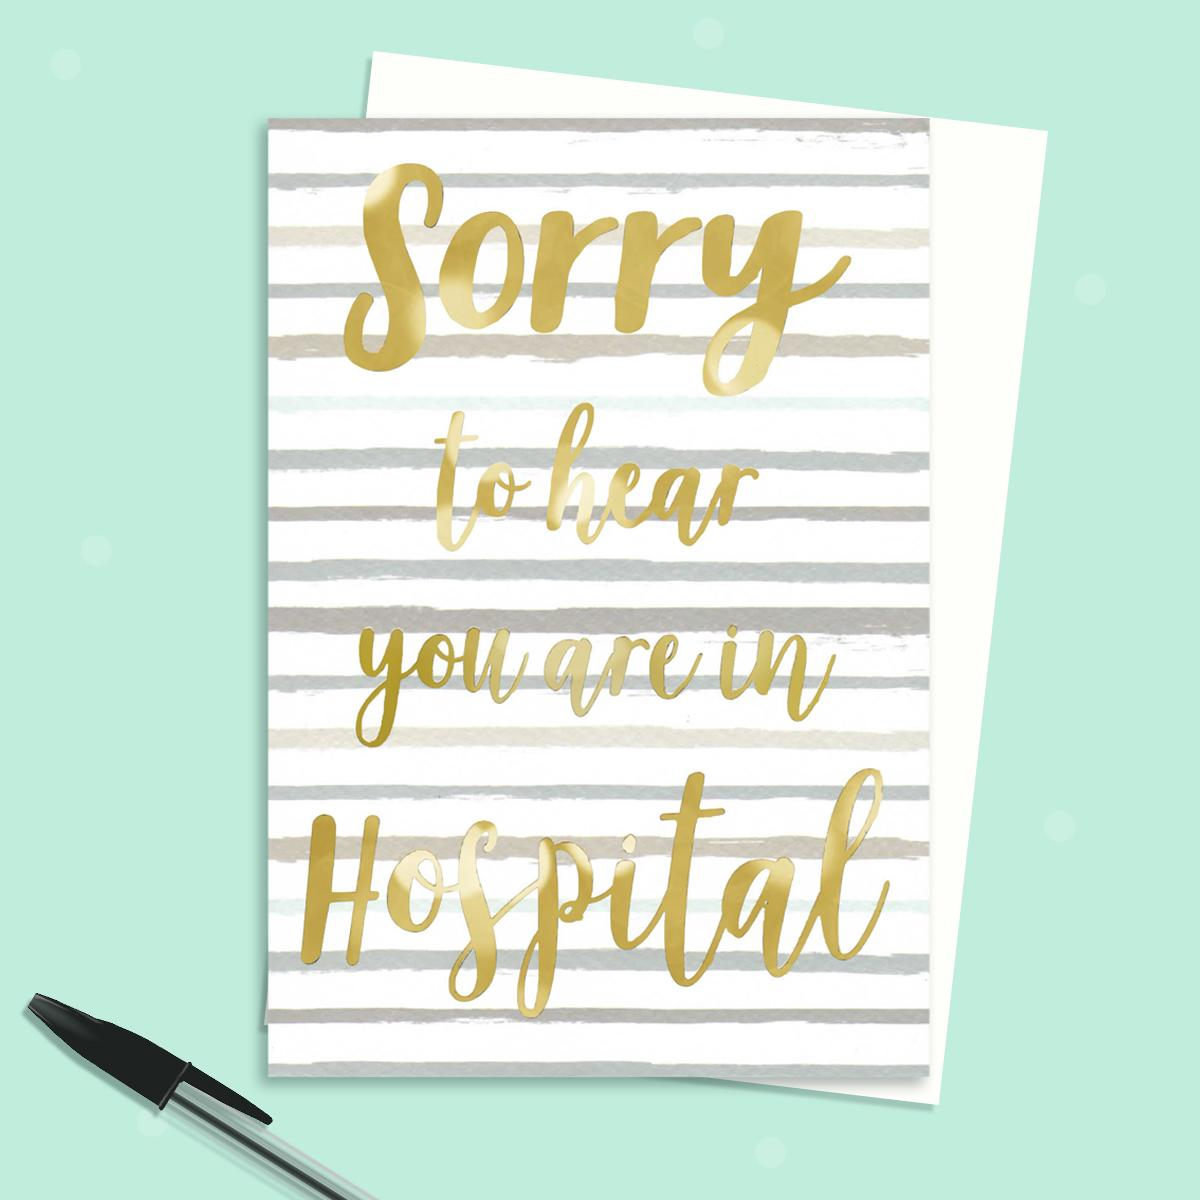 Sorry To Hear You're In Hospital Greeting Card